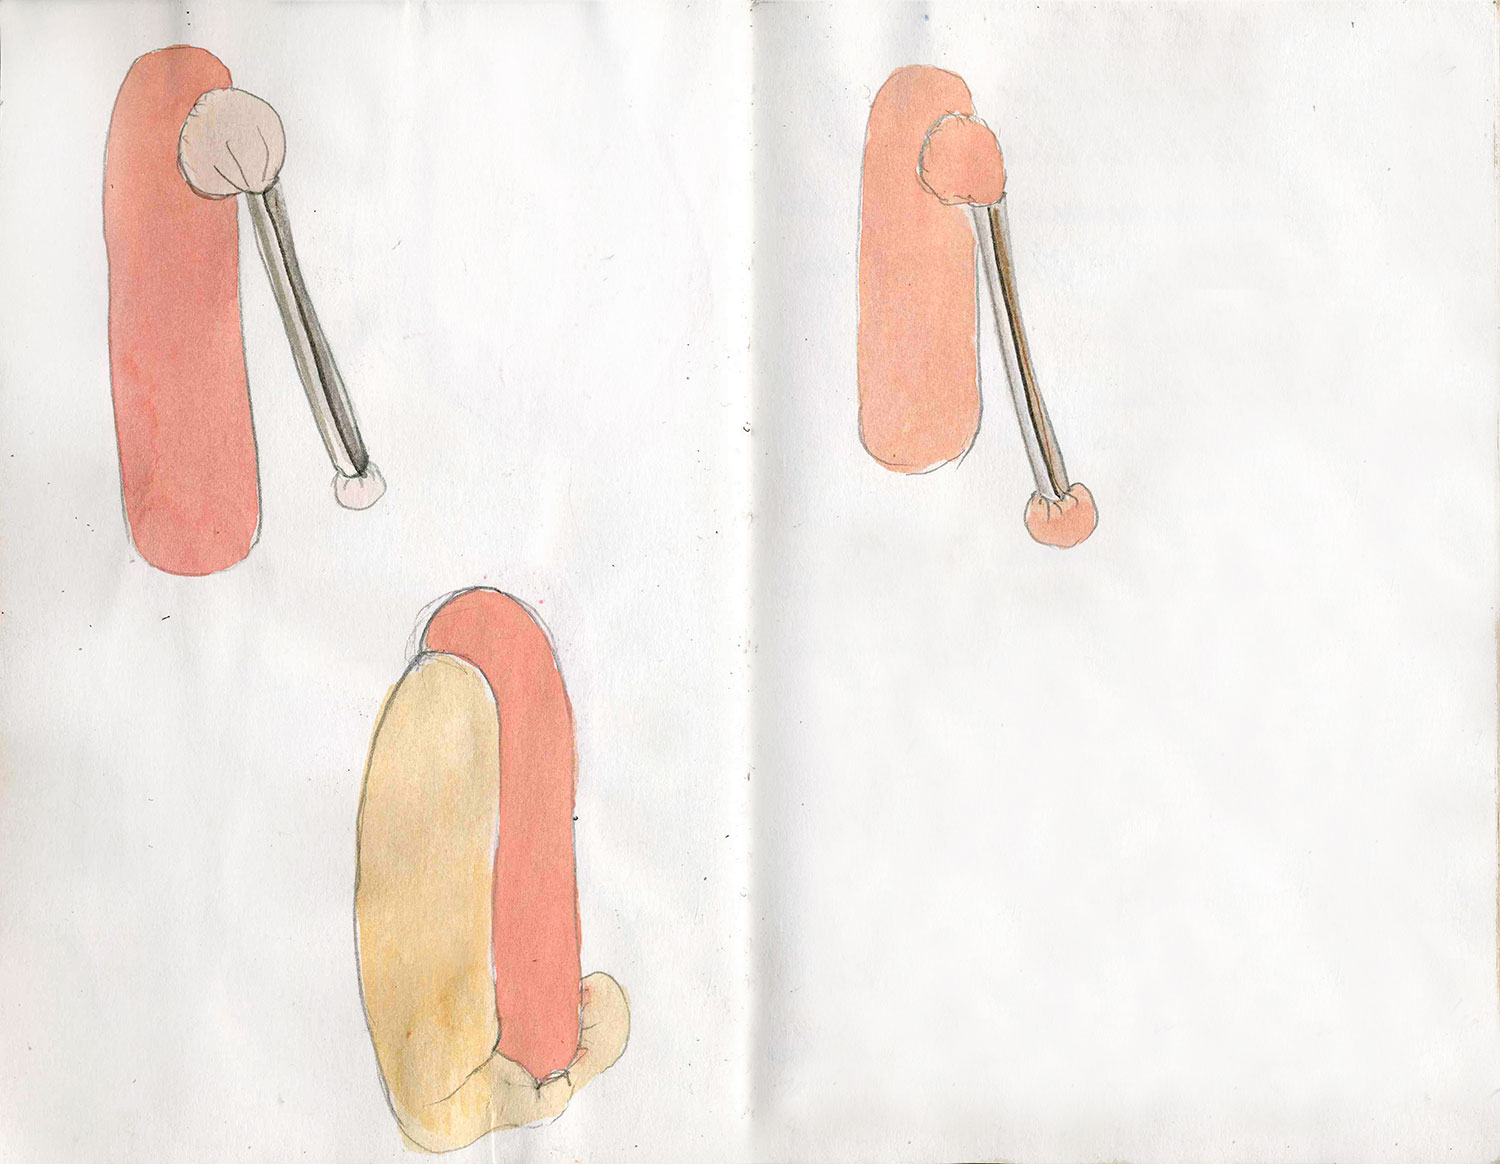 Sketchbook 13